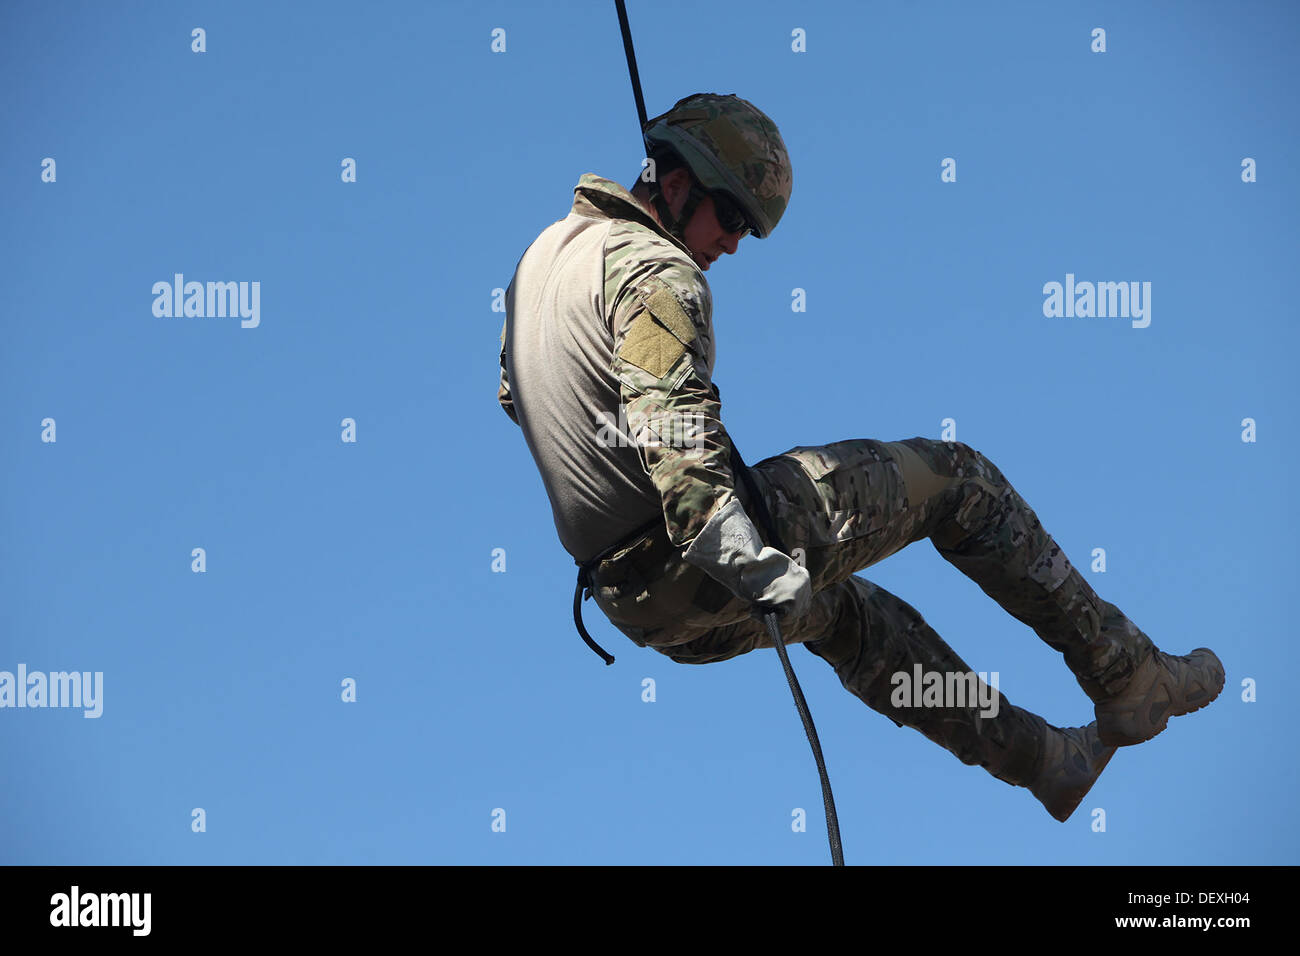 A British Army Commando with 148th Battery, 29th Commando Fire Support Team, Royal Artillery, rappels from a tower during Exercise Burmese Chase 2013, a bilateral training exercise between U.S. and British military forces aboard Camp Pendleton, Calif., Se - Stock Image